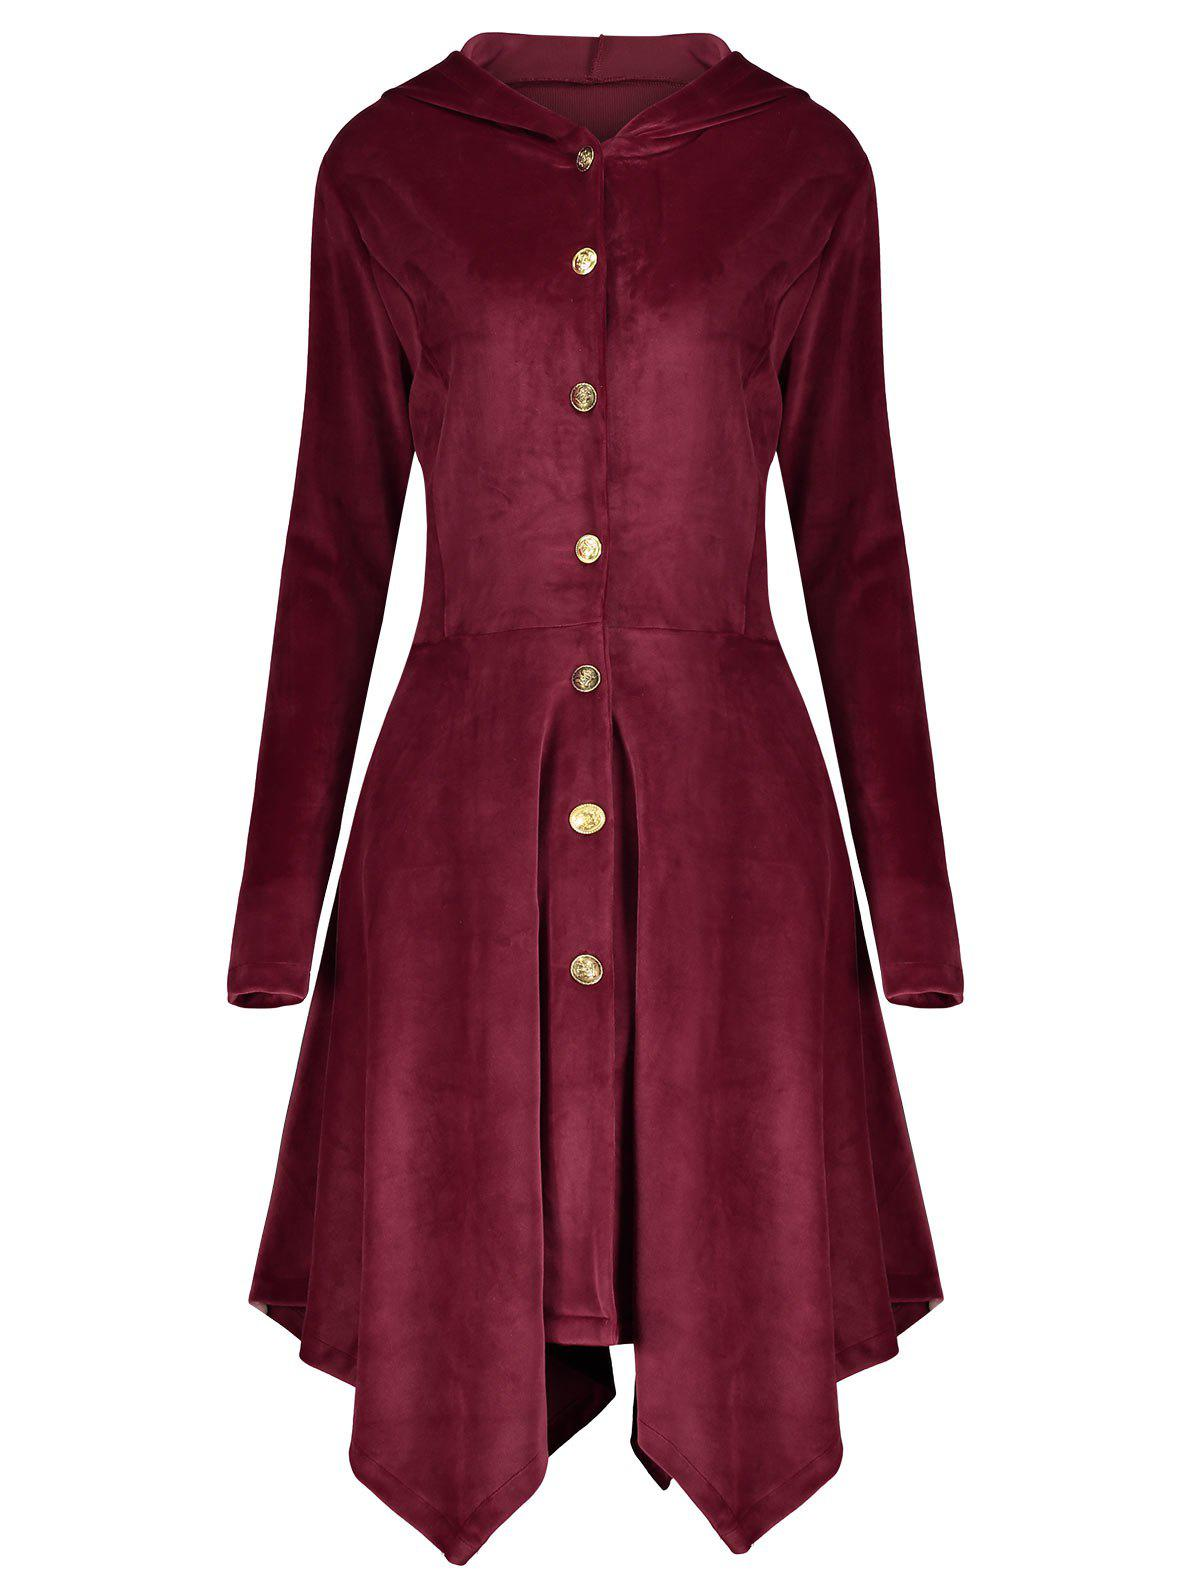 Store Velvet Asymmetric Plus Size Button Up Hooded Coat